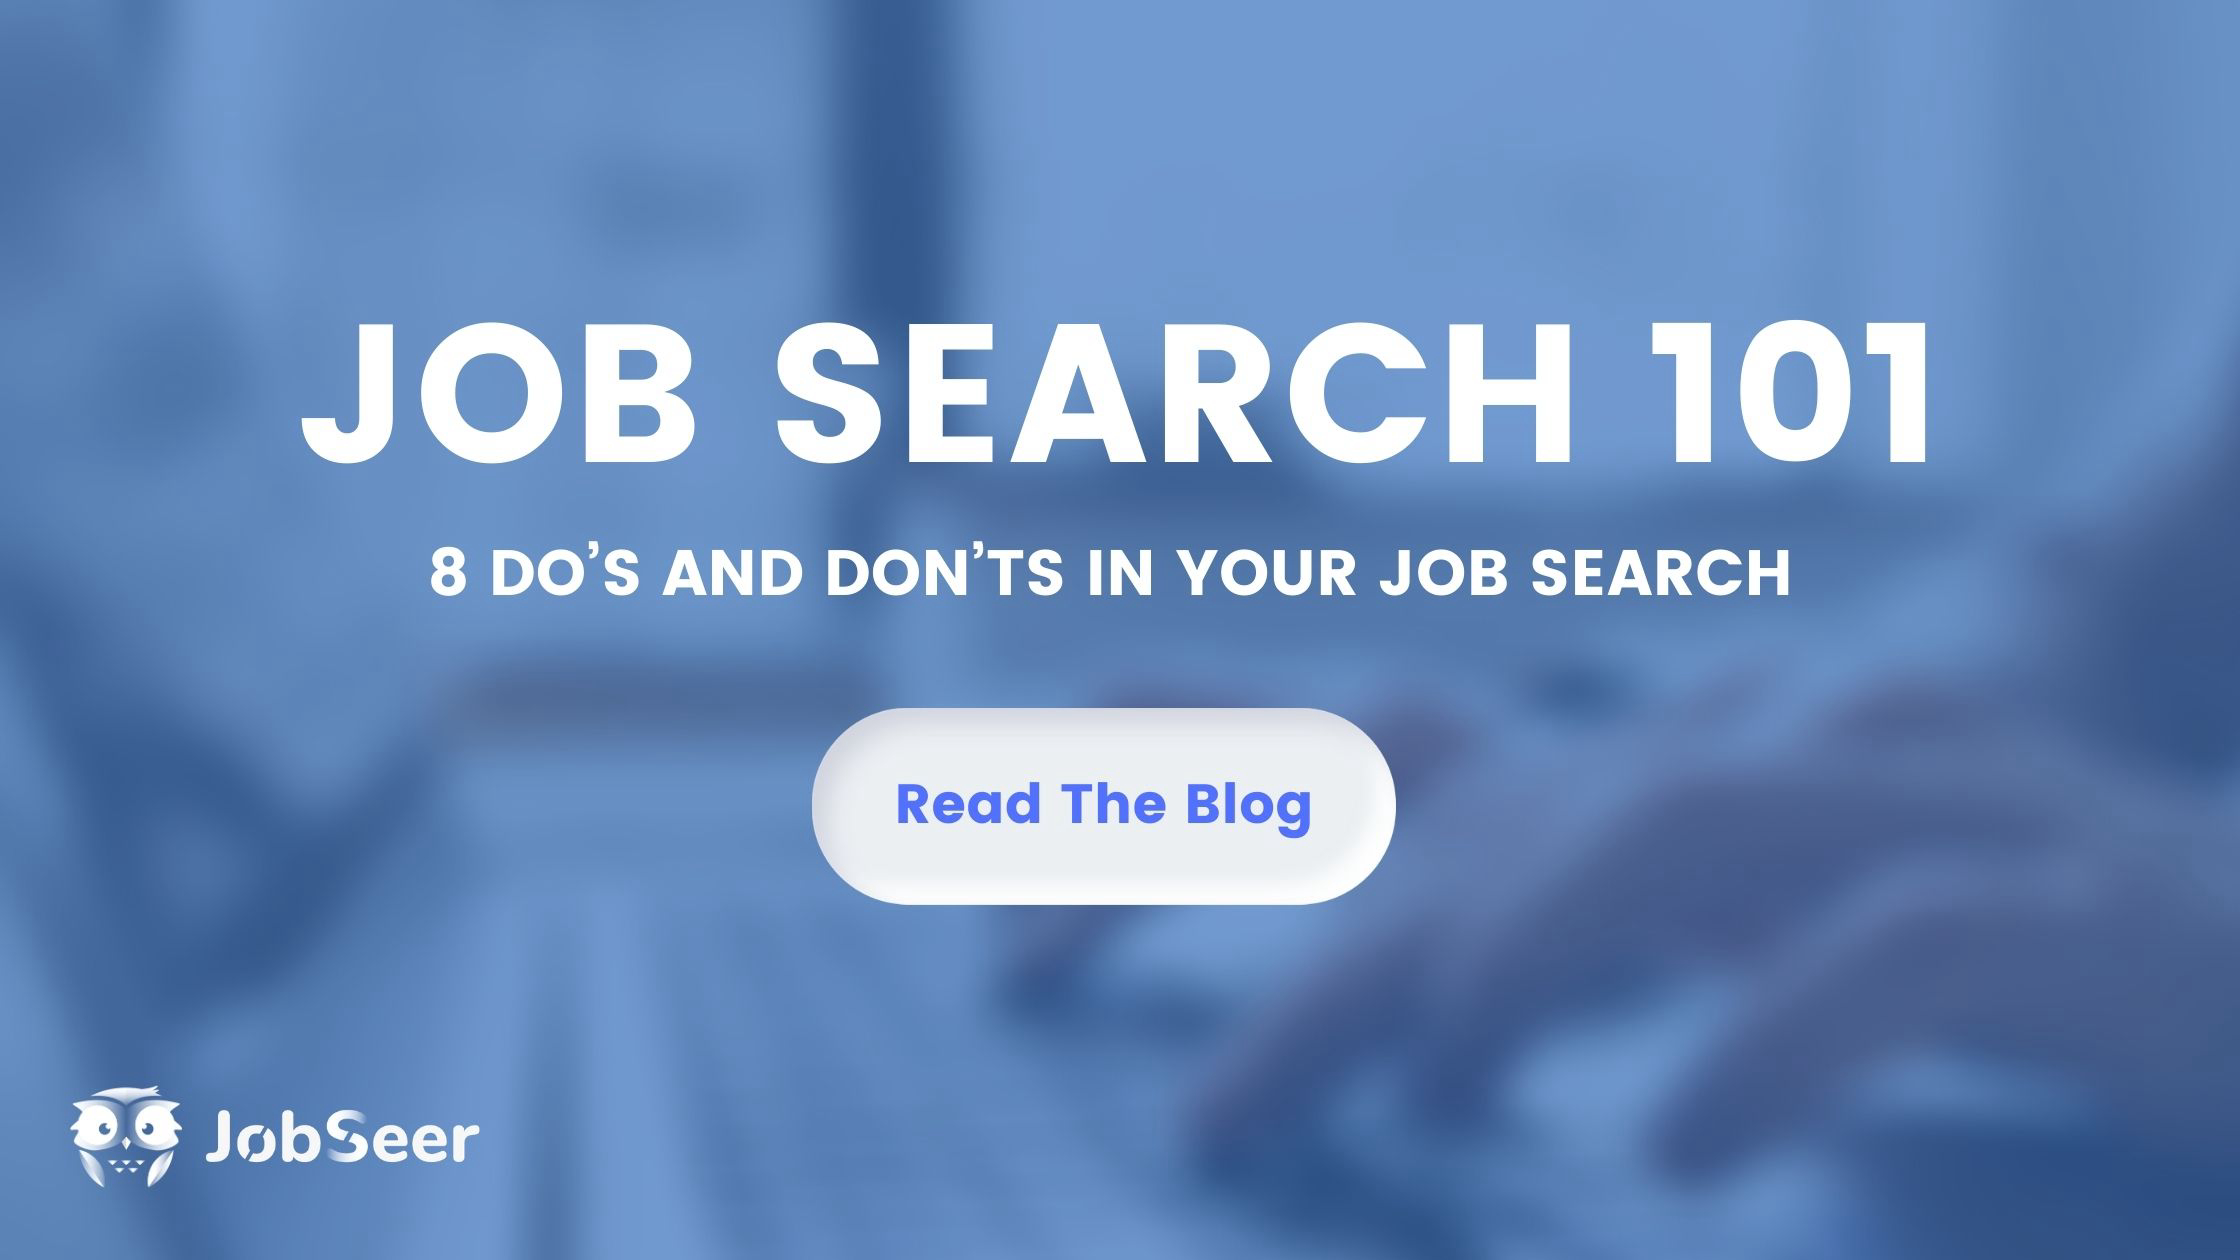 How To Start A Job Search?